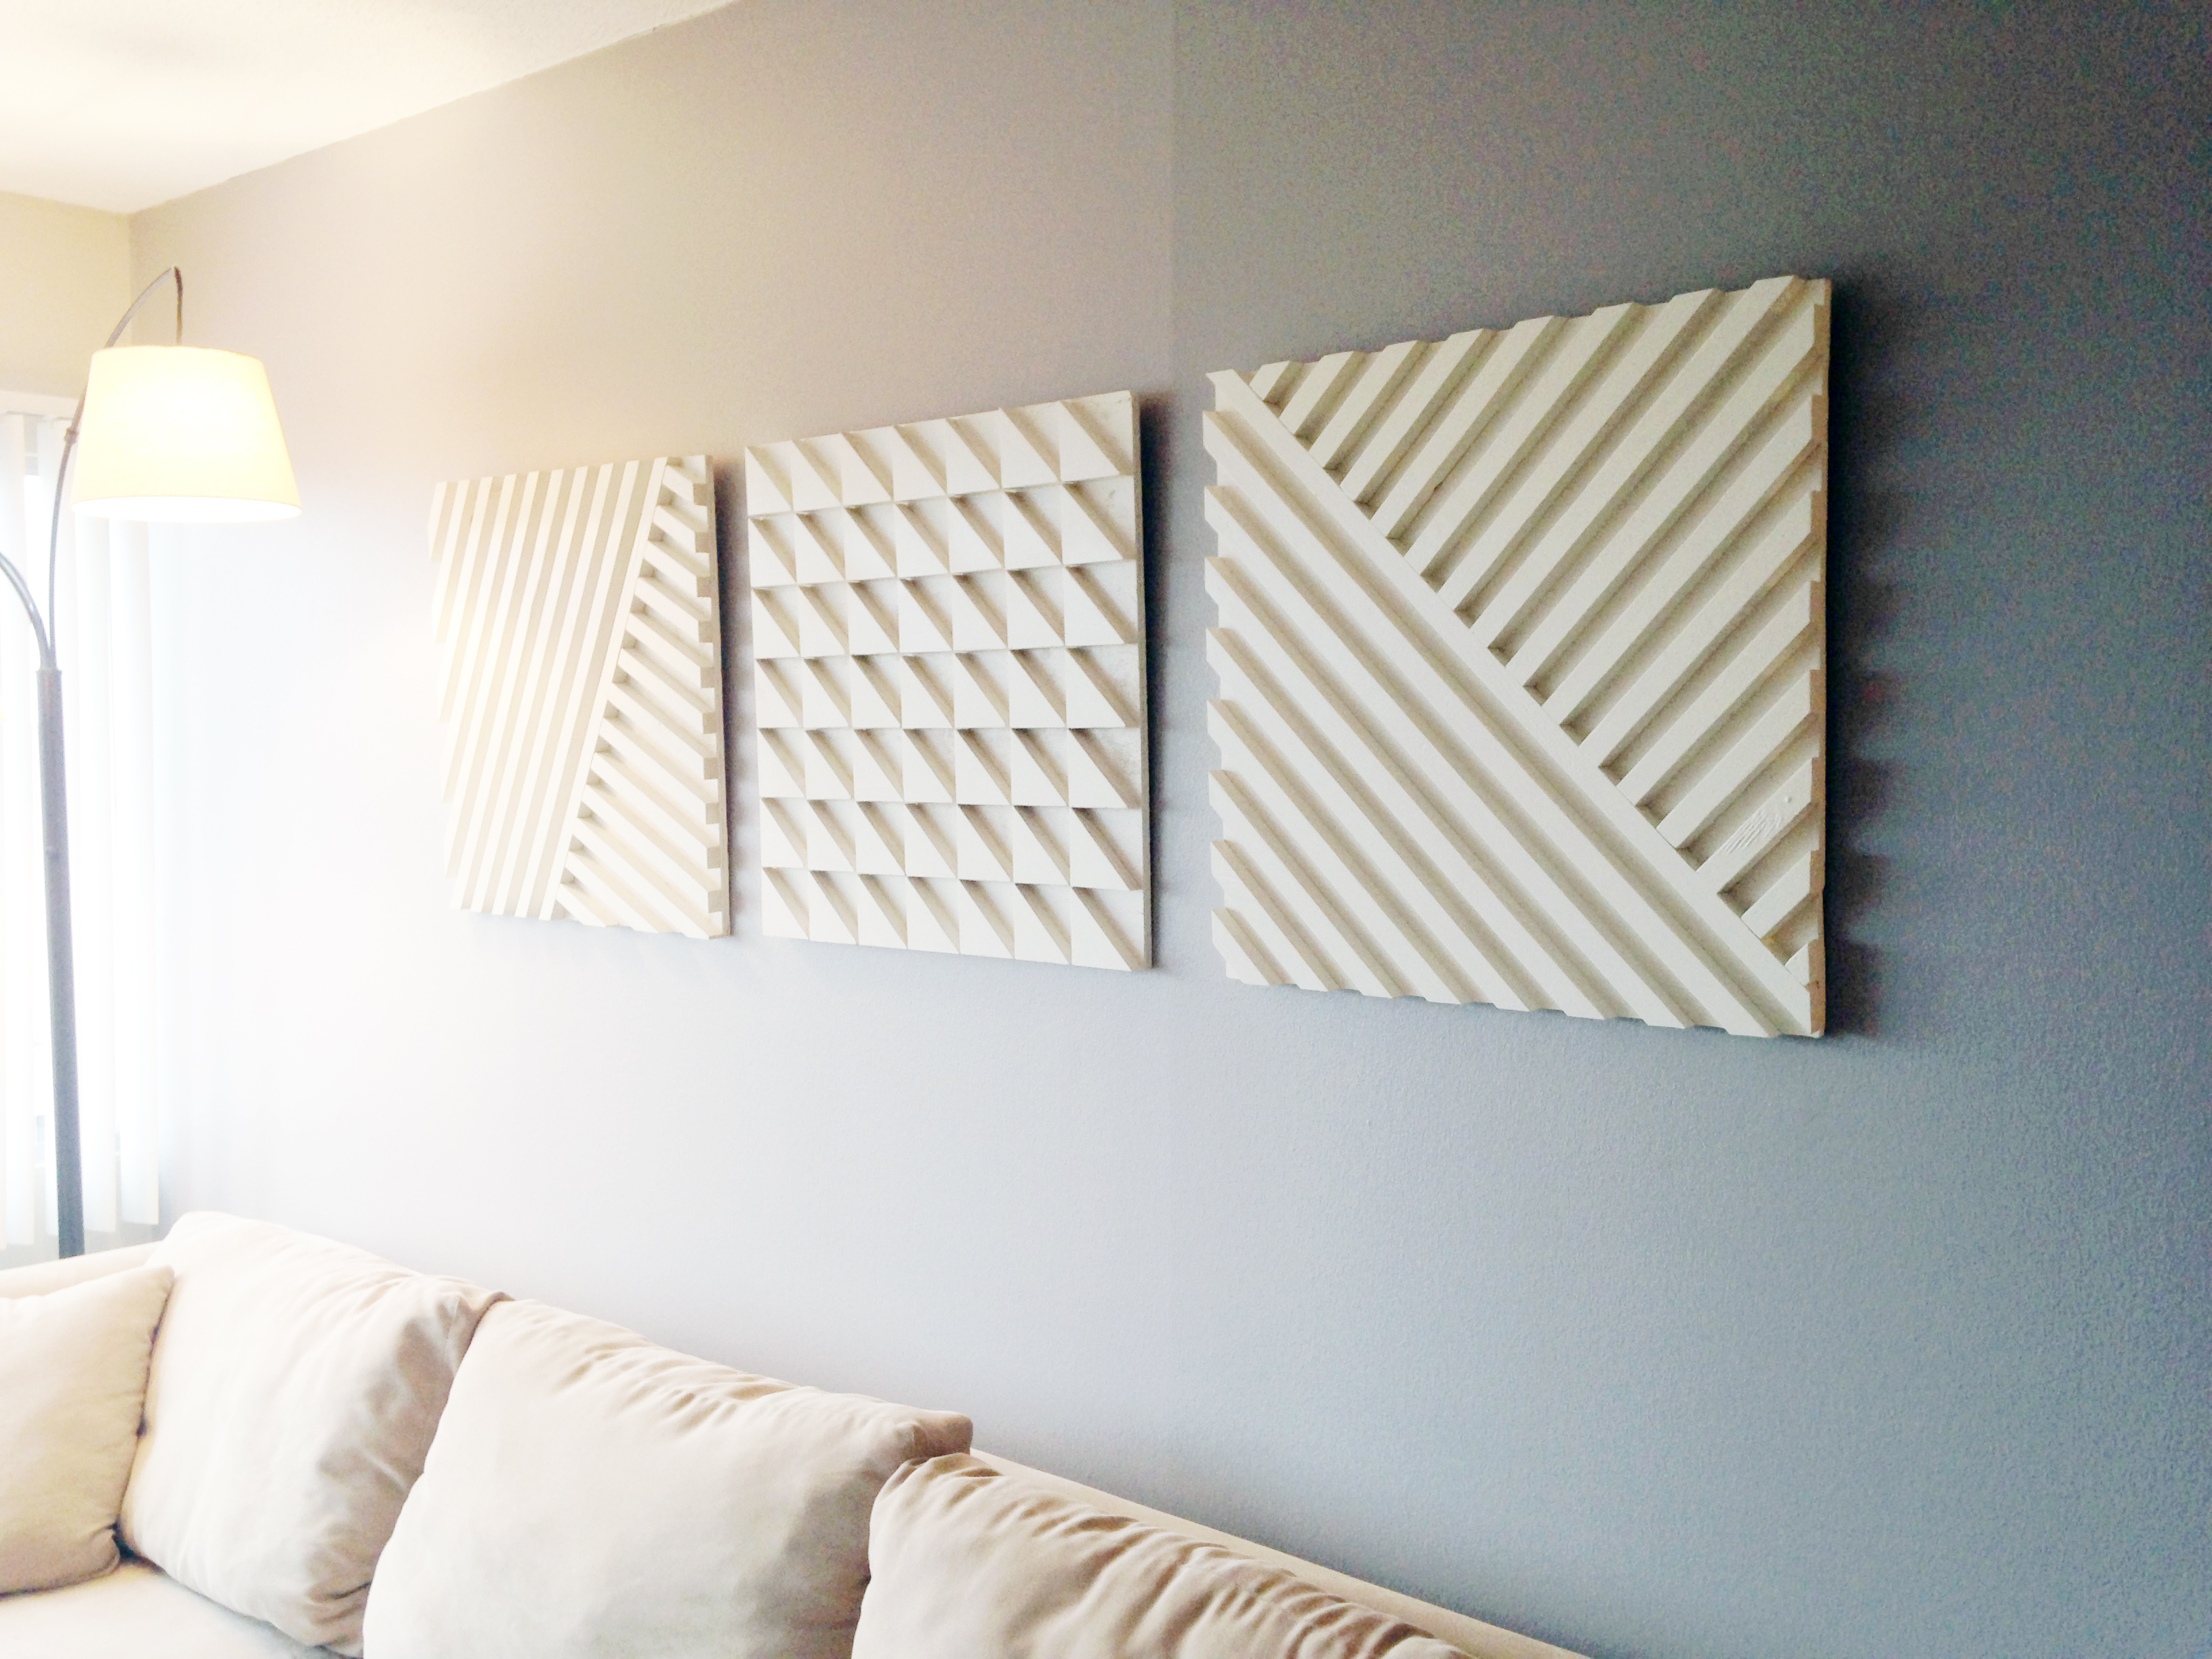 Using plywood & scrap wood to make a geometric art piece